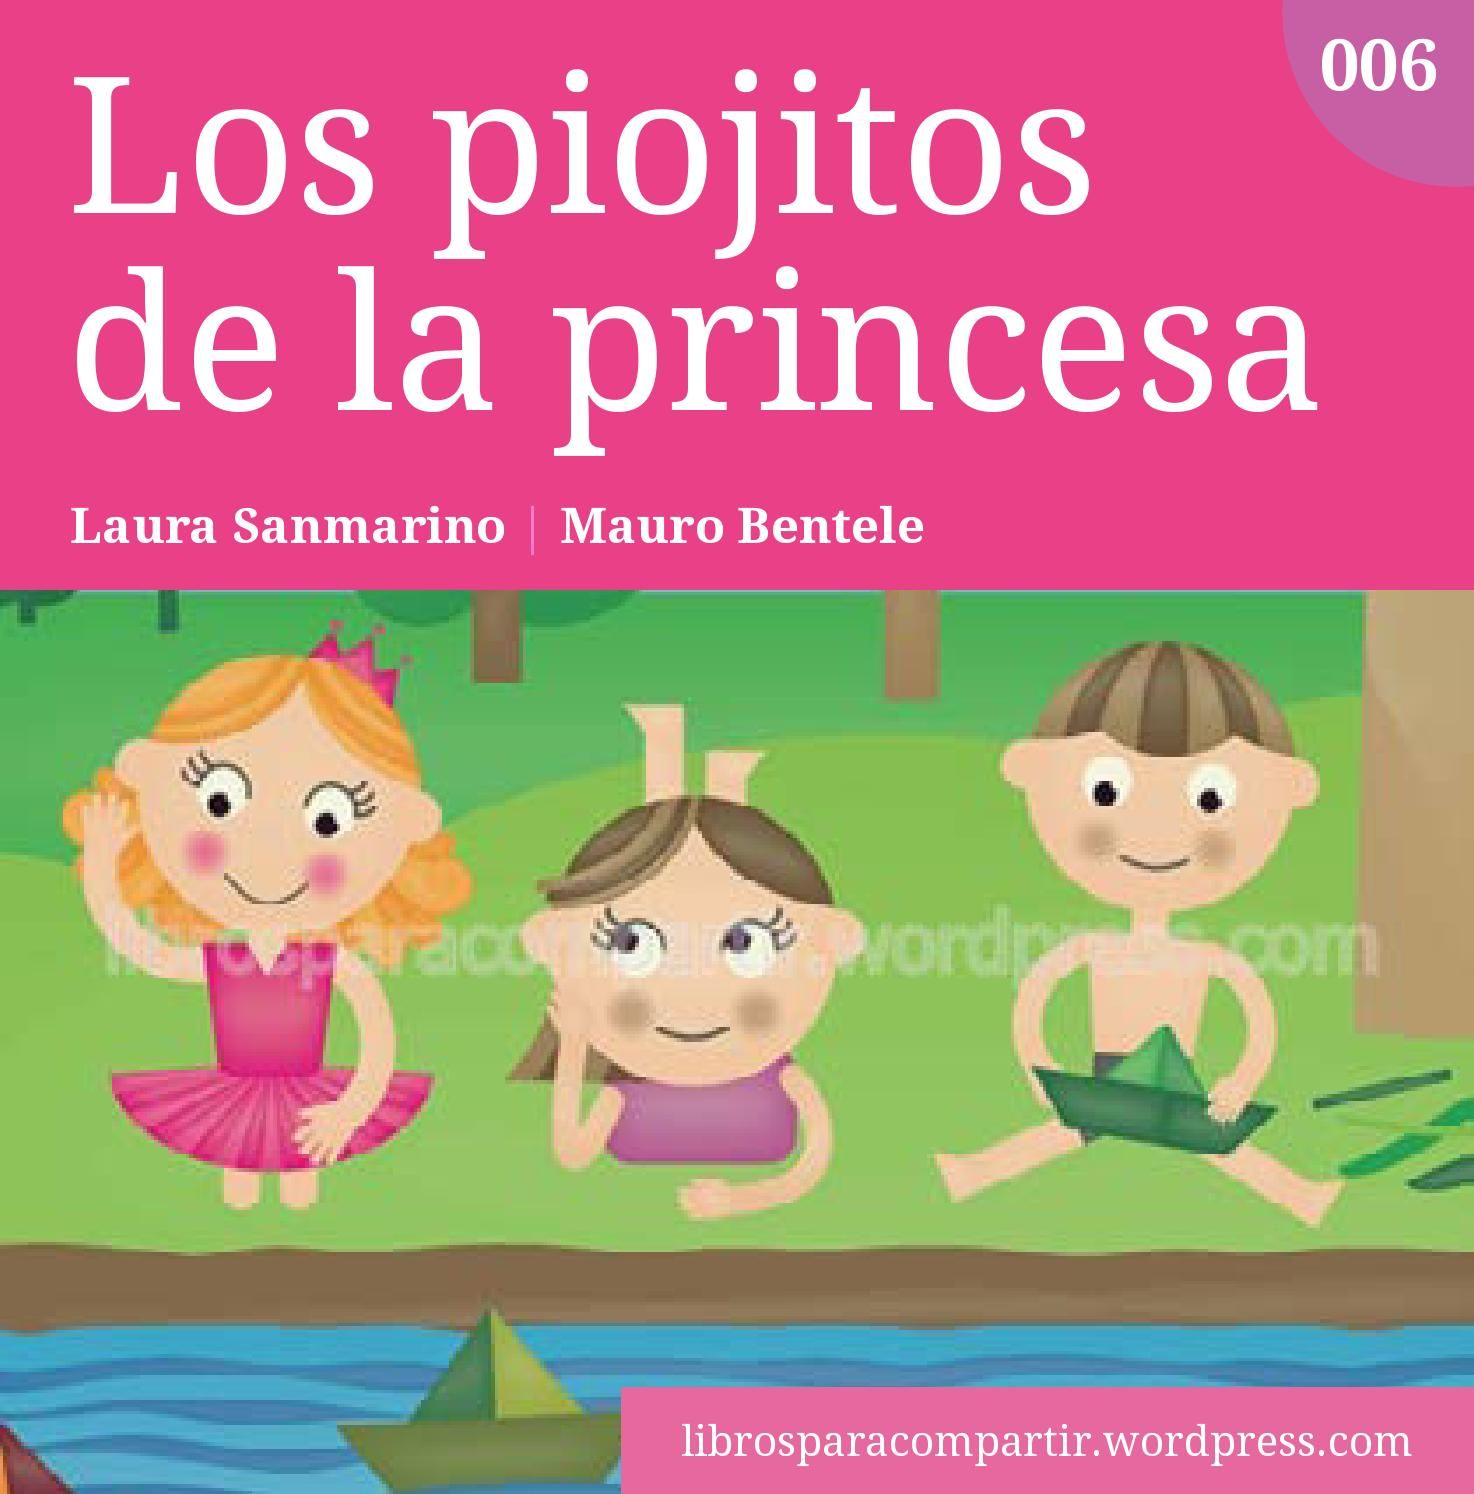 006 Los Piojitos De La Princesa - Librosparacompartir.wordpress.com